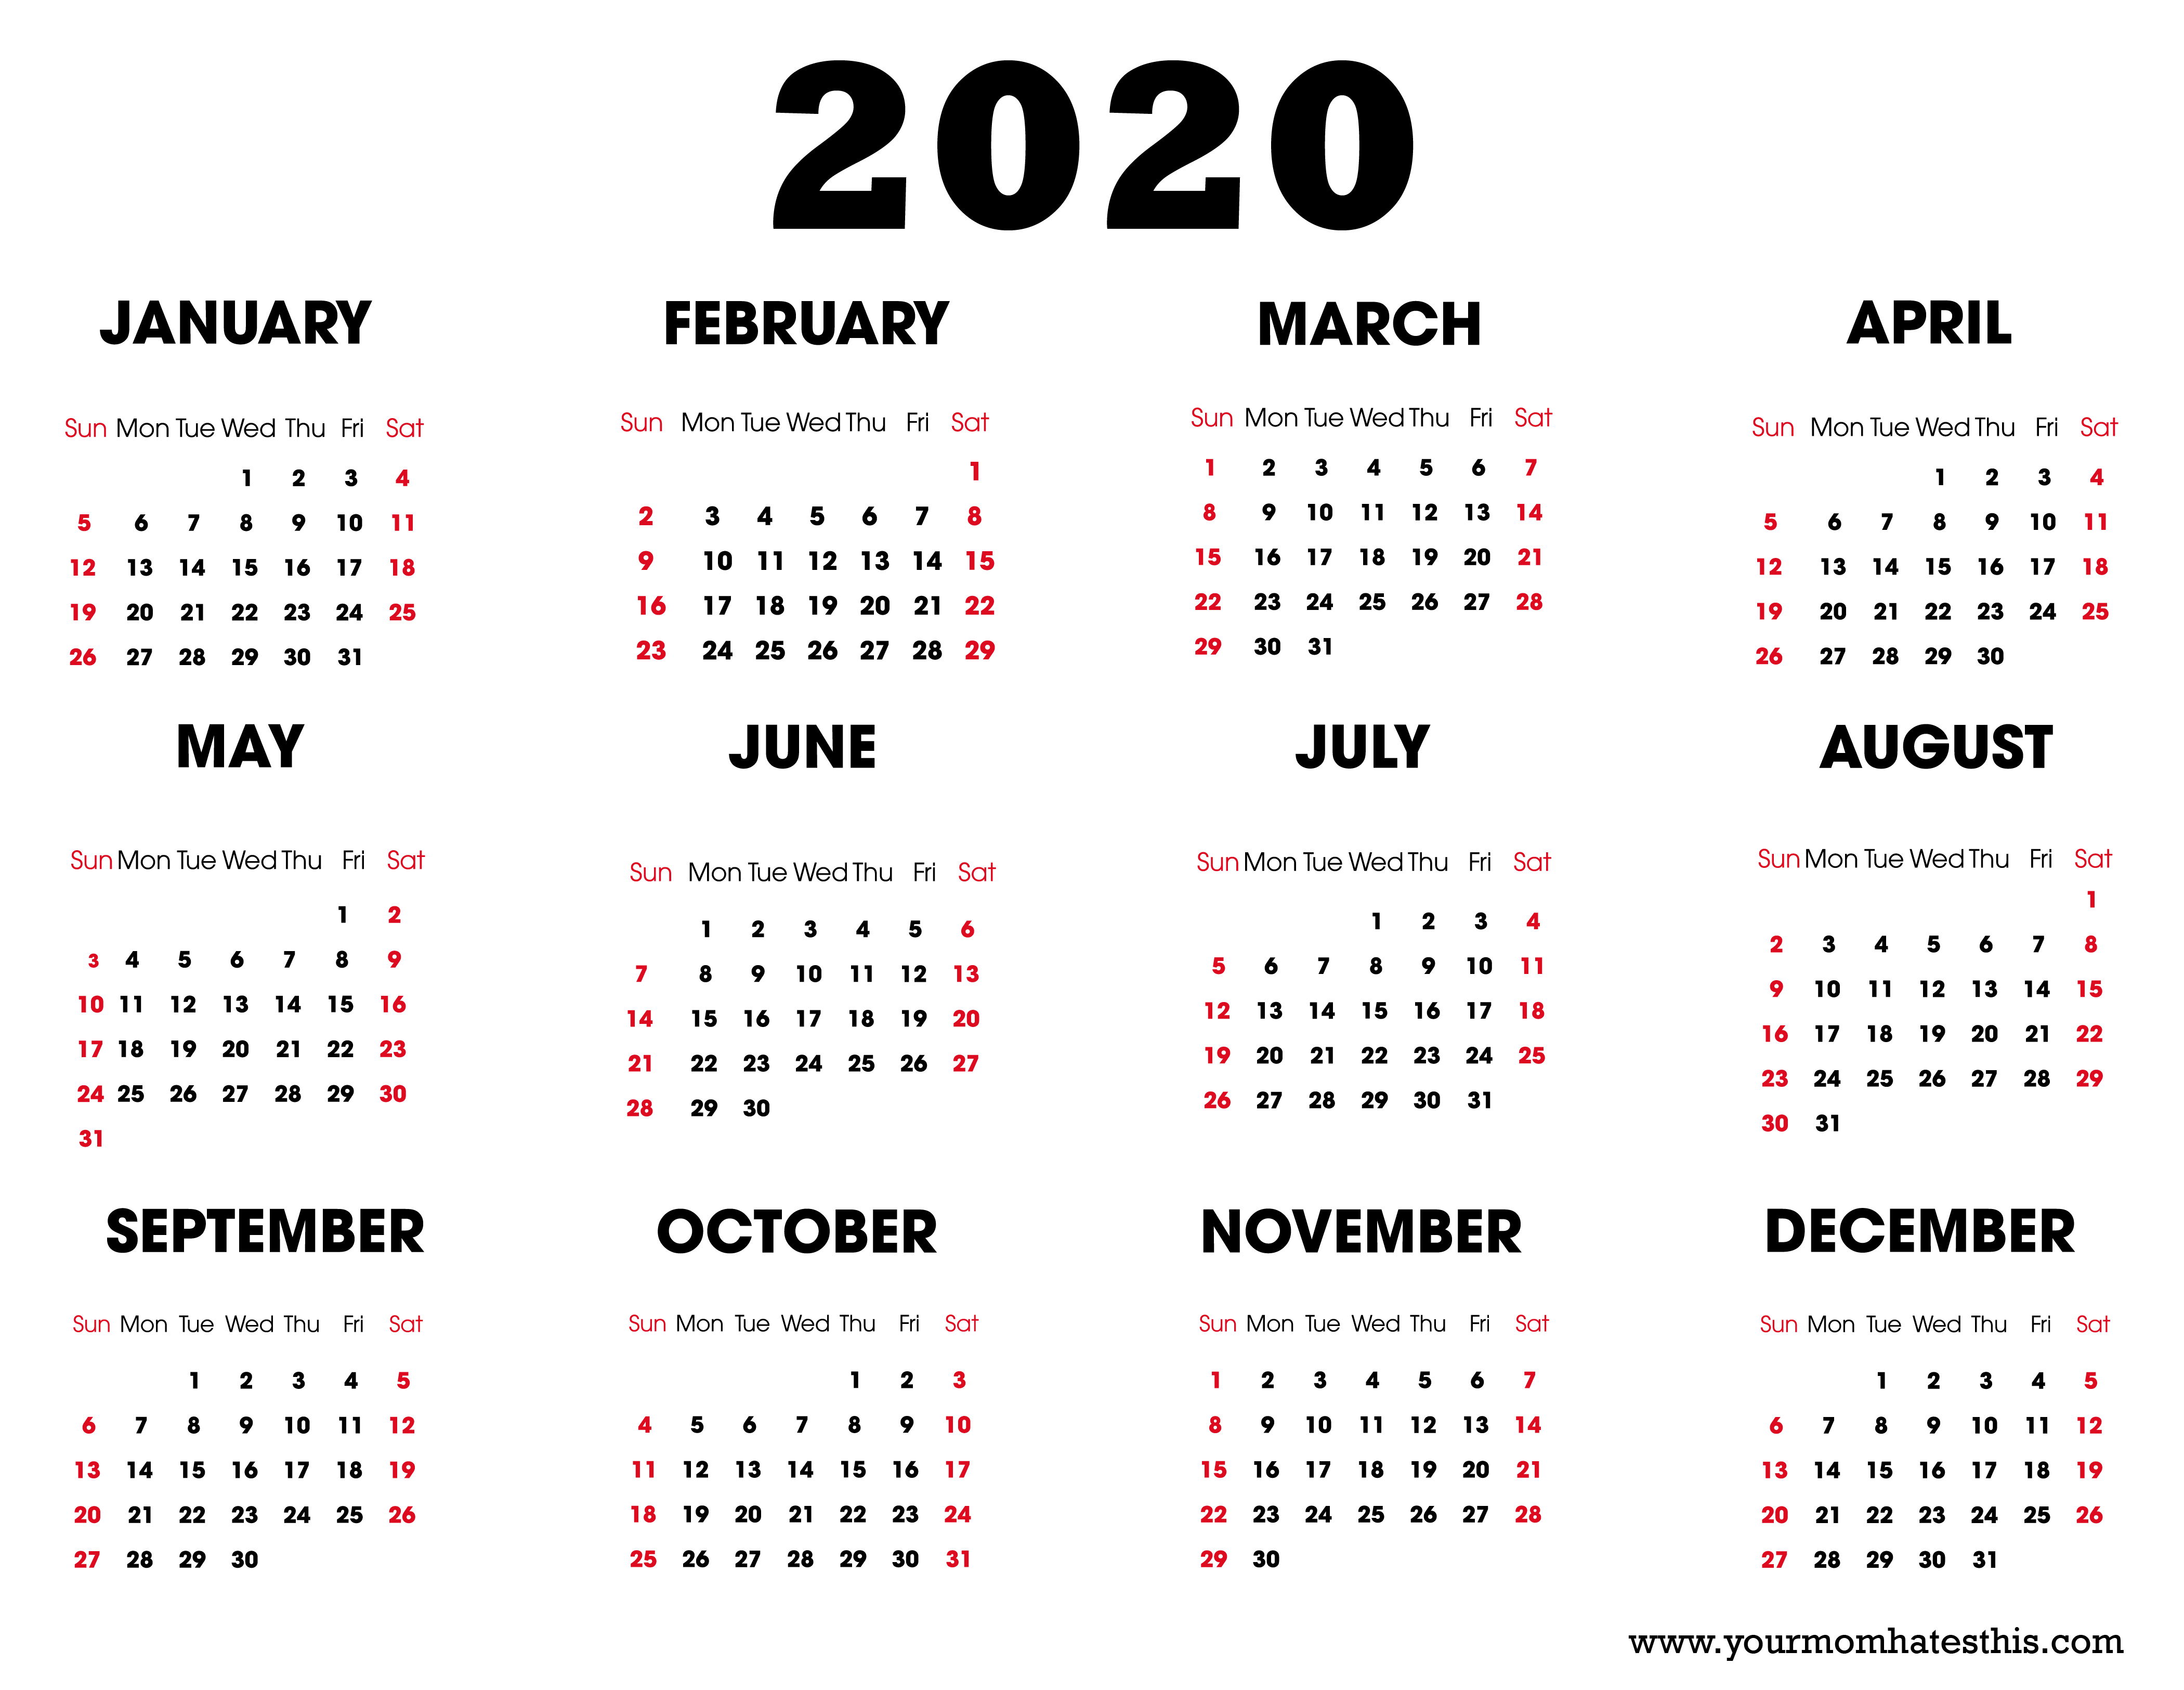 2020 Calendar – Download Printable Calendars for Print Free 2020 Calendars Without Downloading